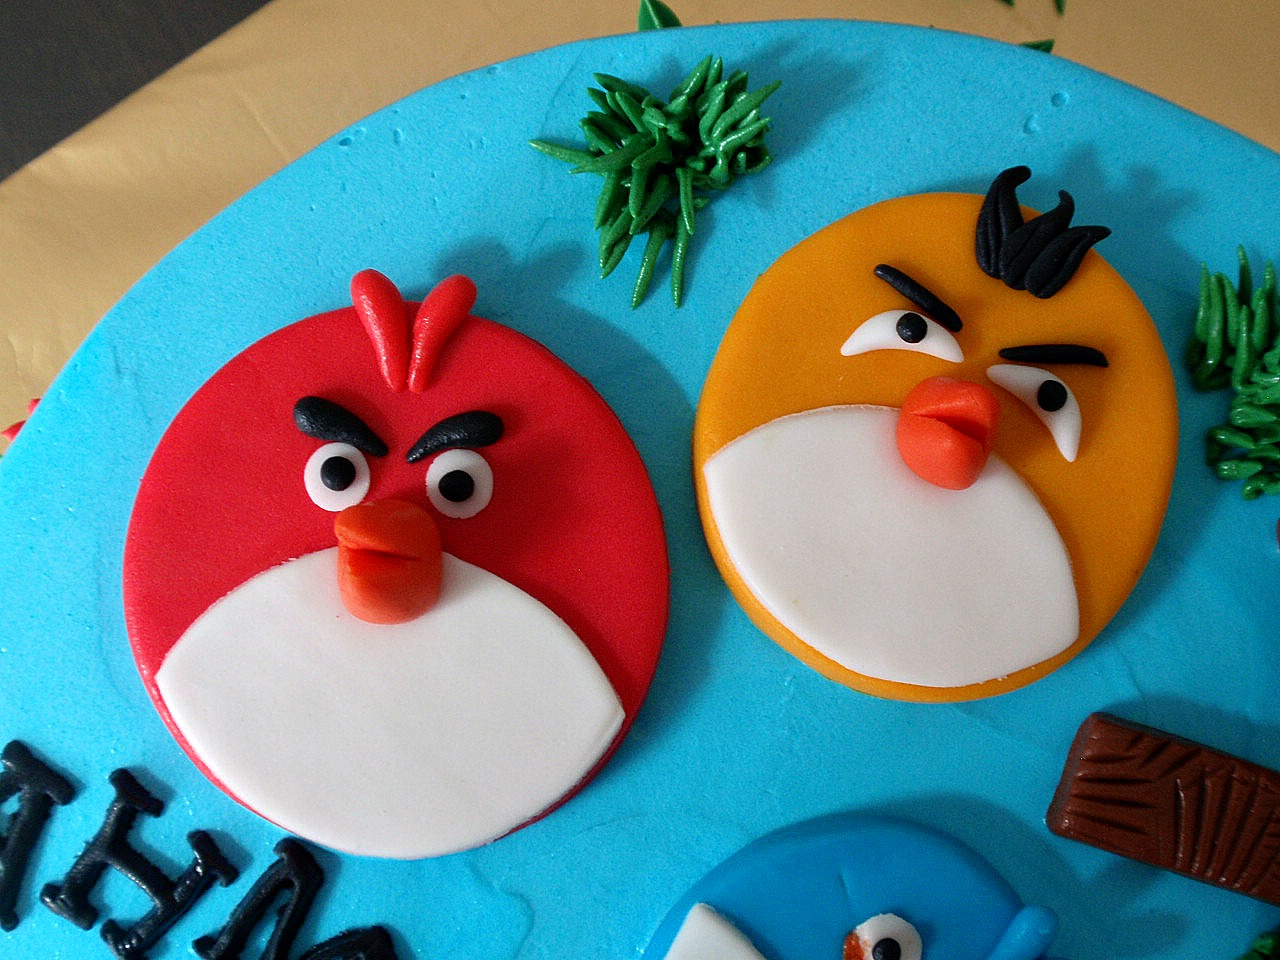 Edible Images - La Creme Cakes Angry birds edible cupcake images